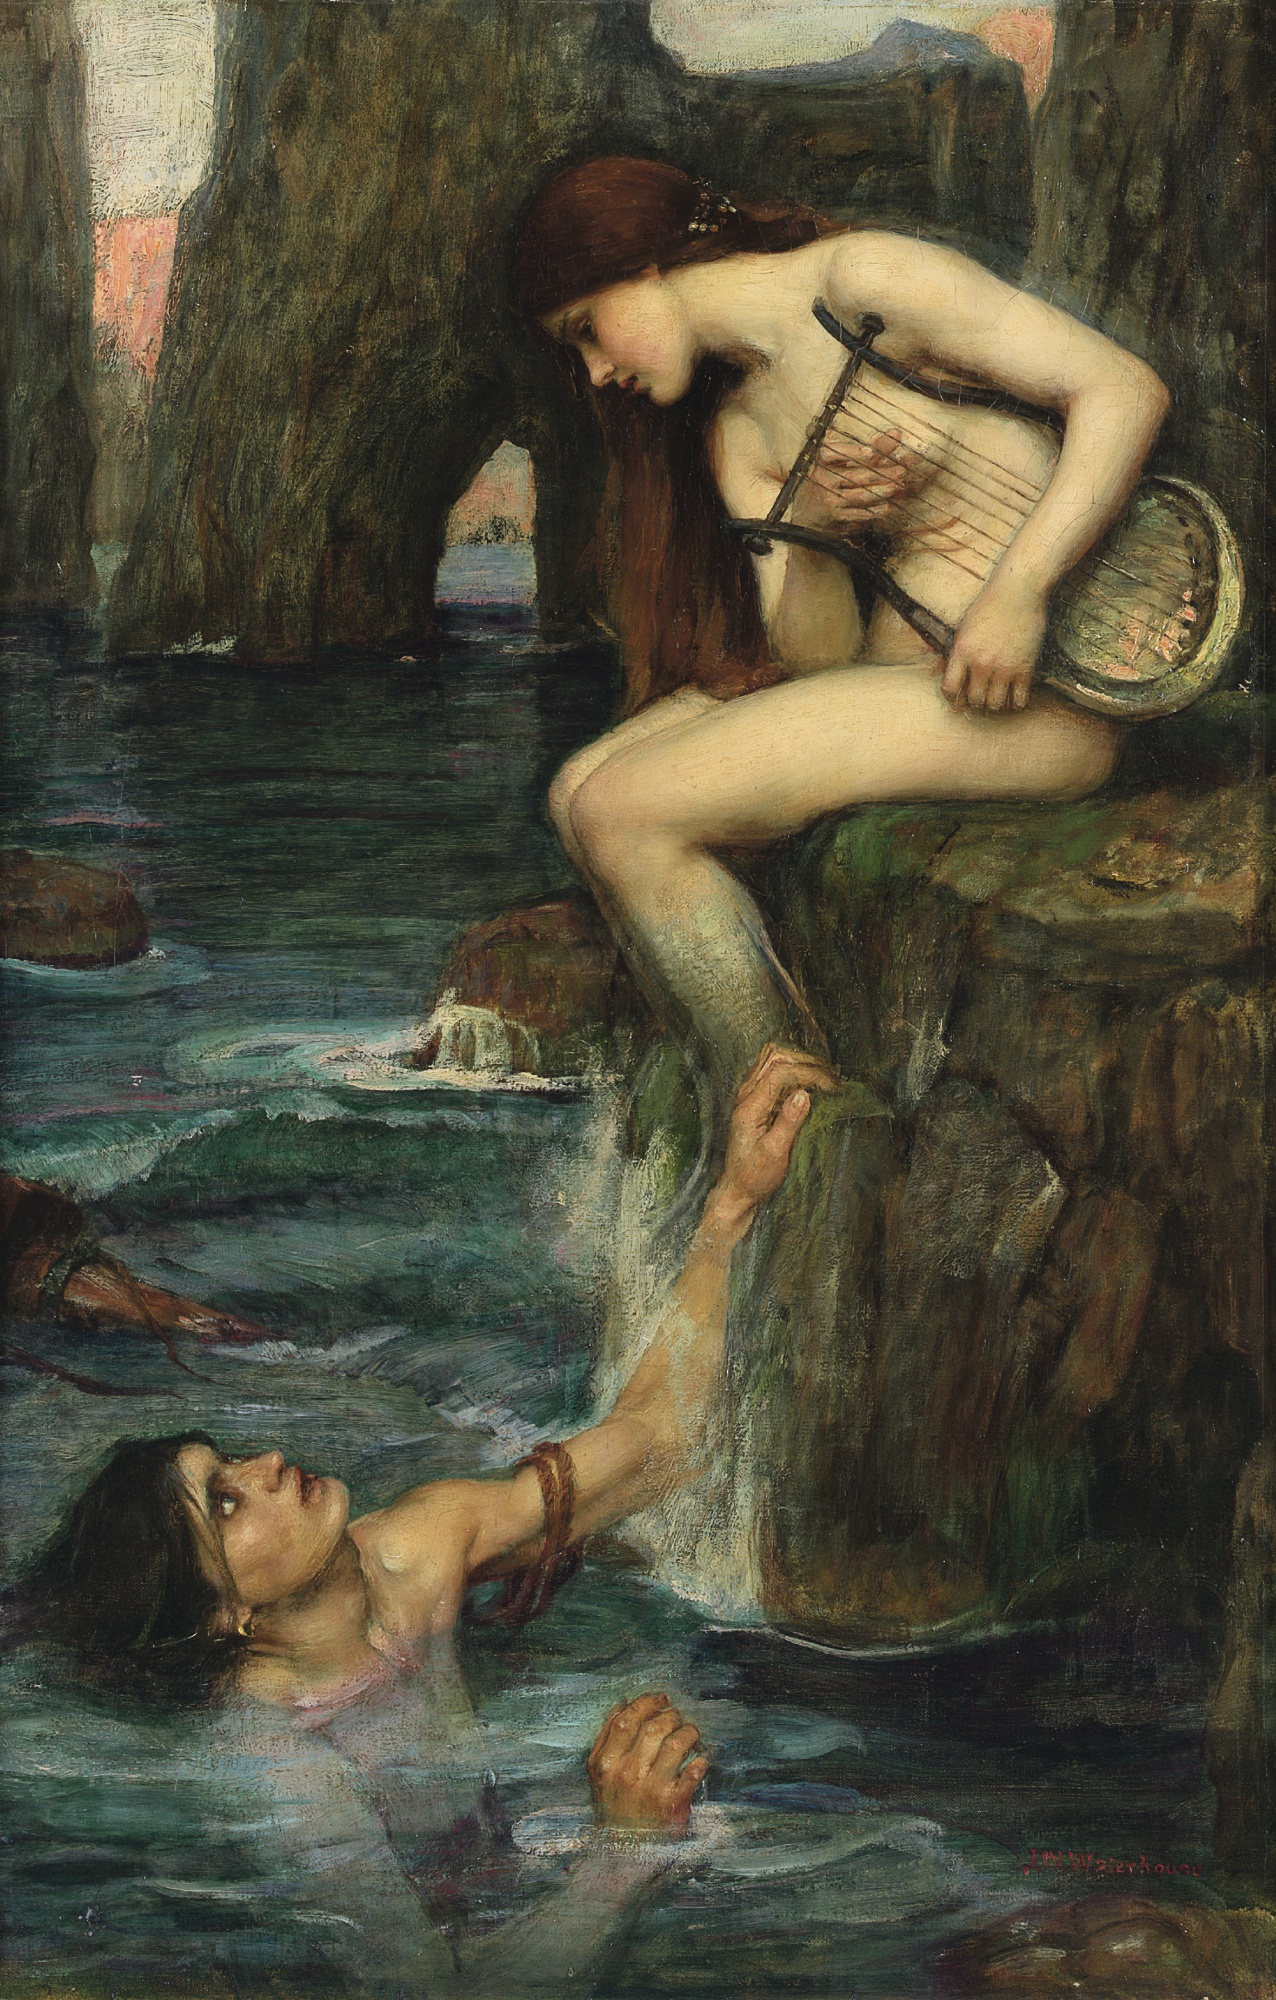 An image of The Siren by John William Waterhouse.